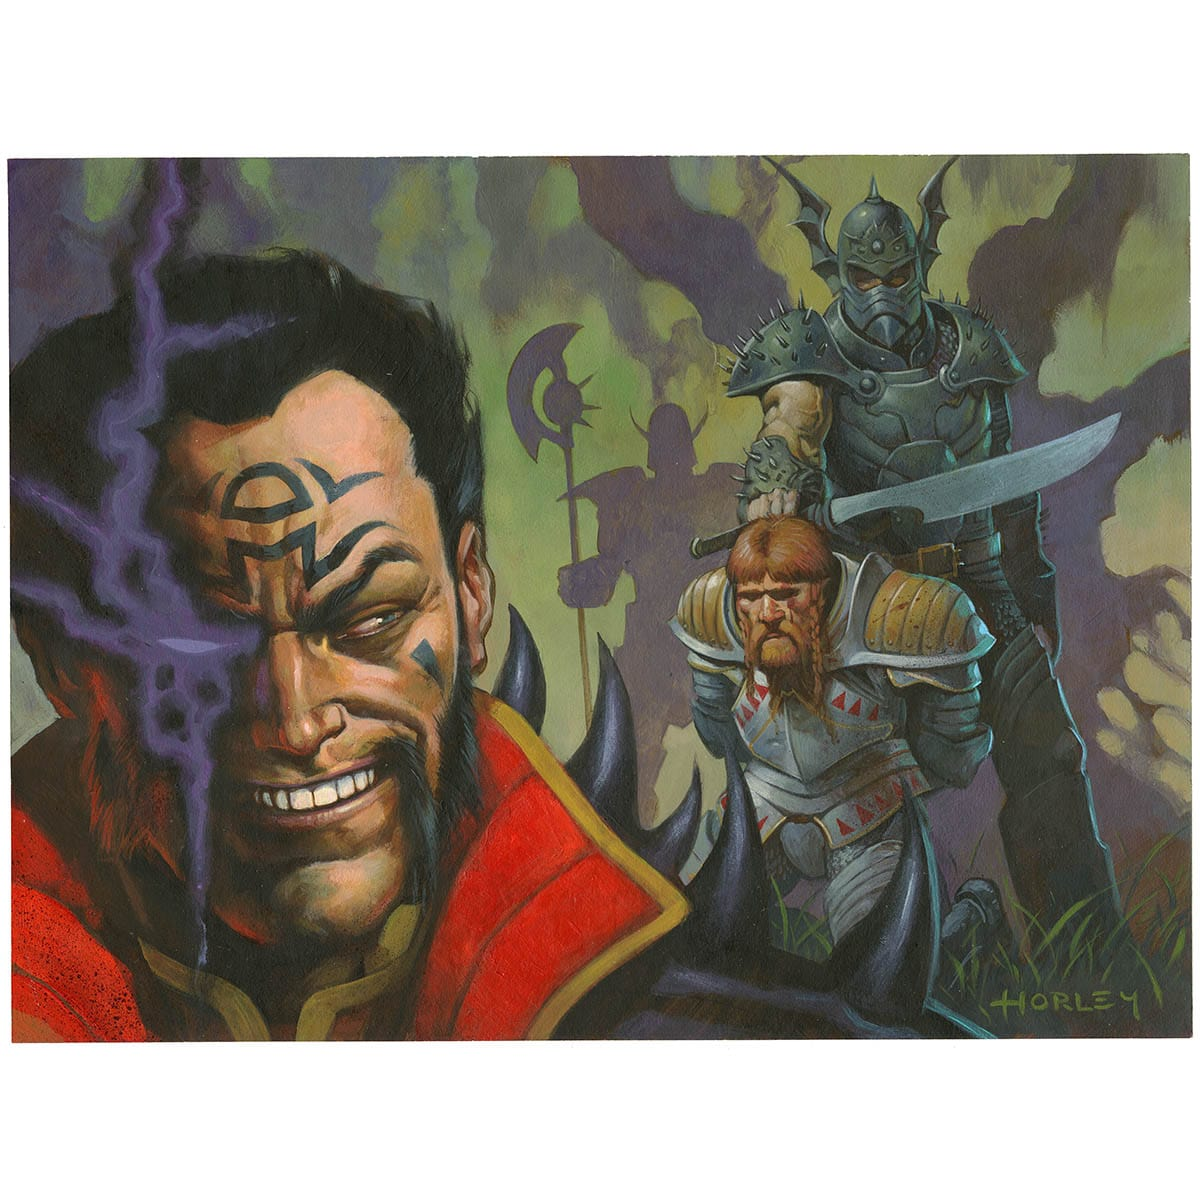 Oppression Print - Print - Original Magic Art - Accessories for Magic the Gathering and other card games